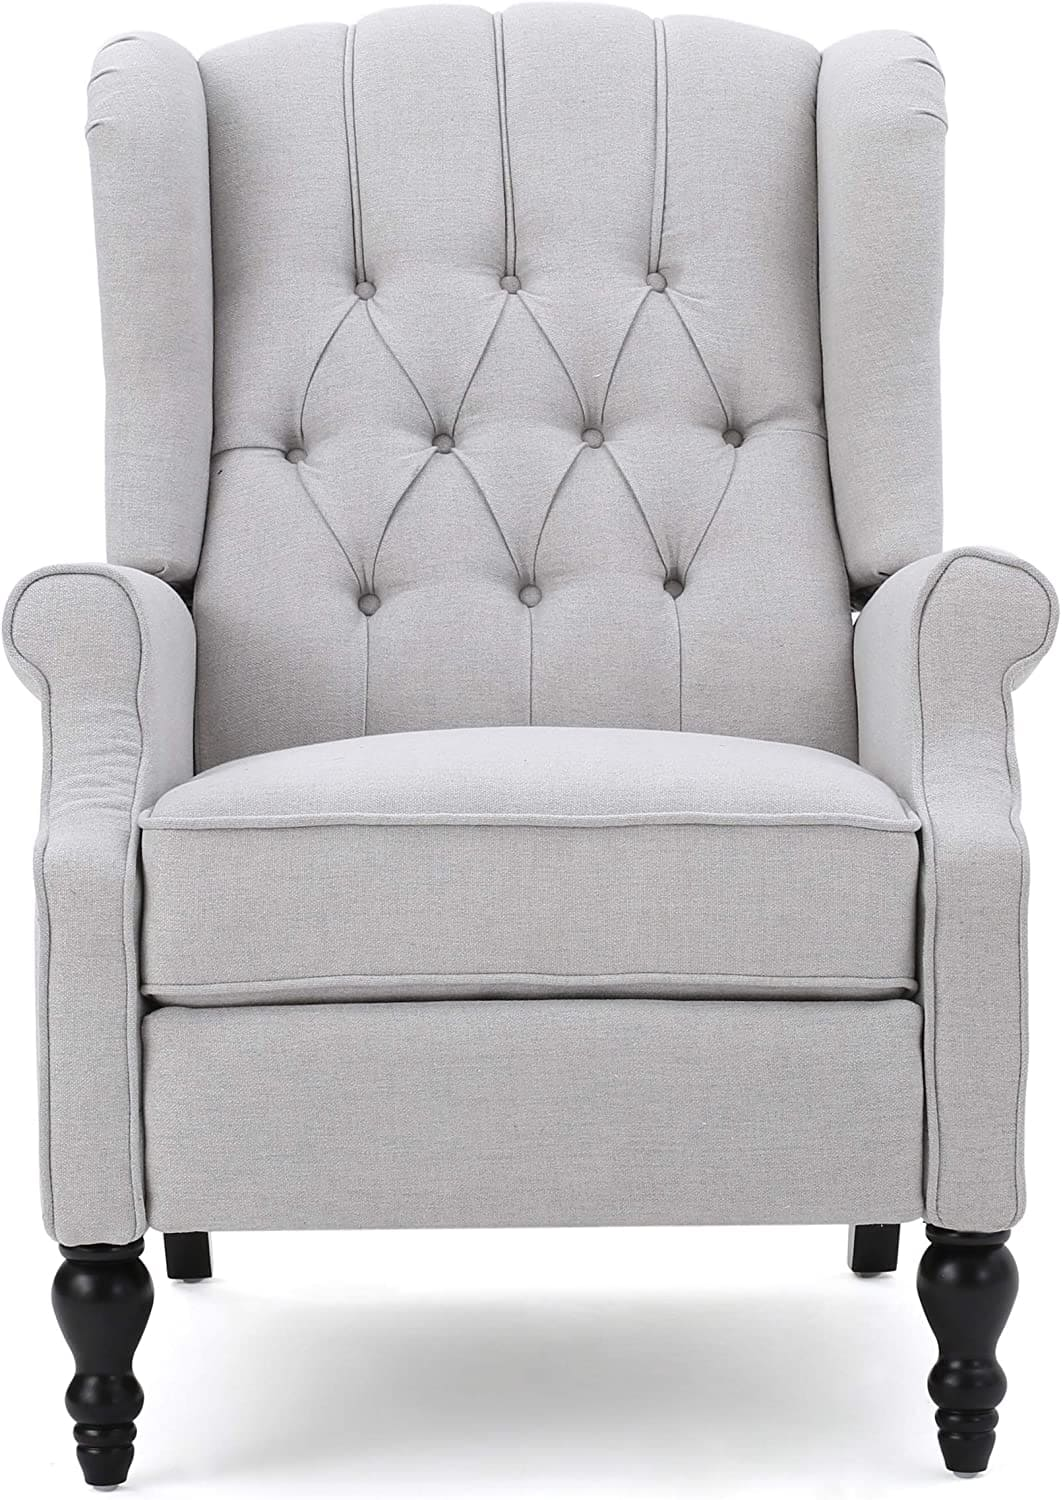 grey fabric recliner chair